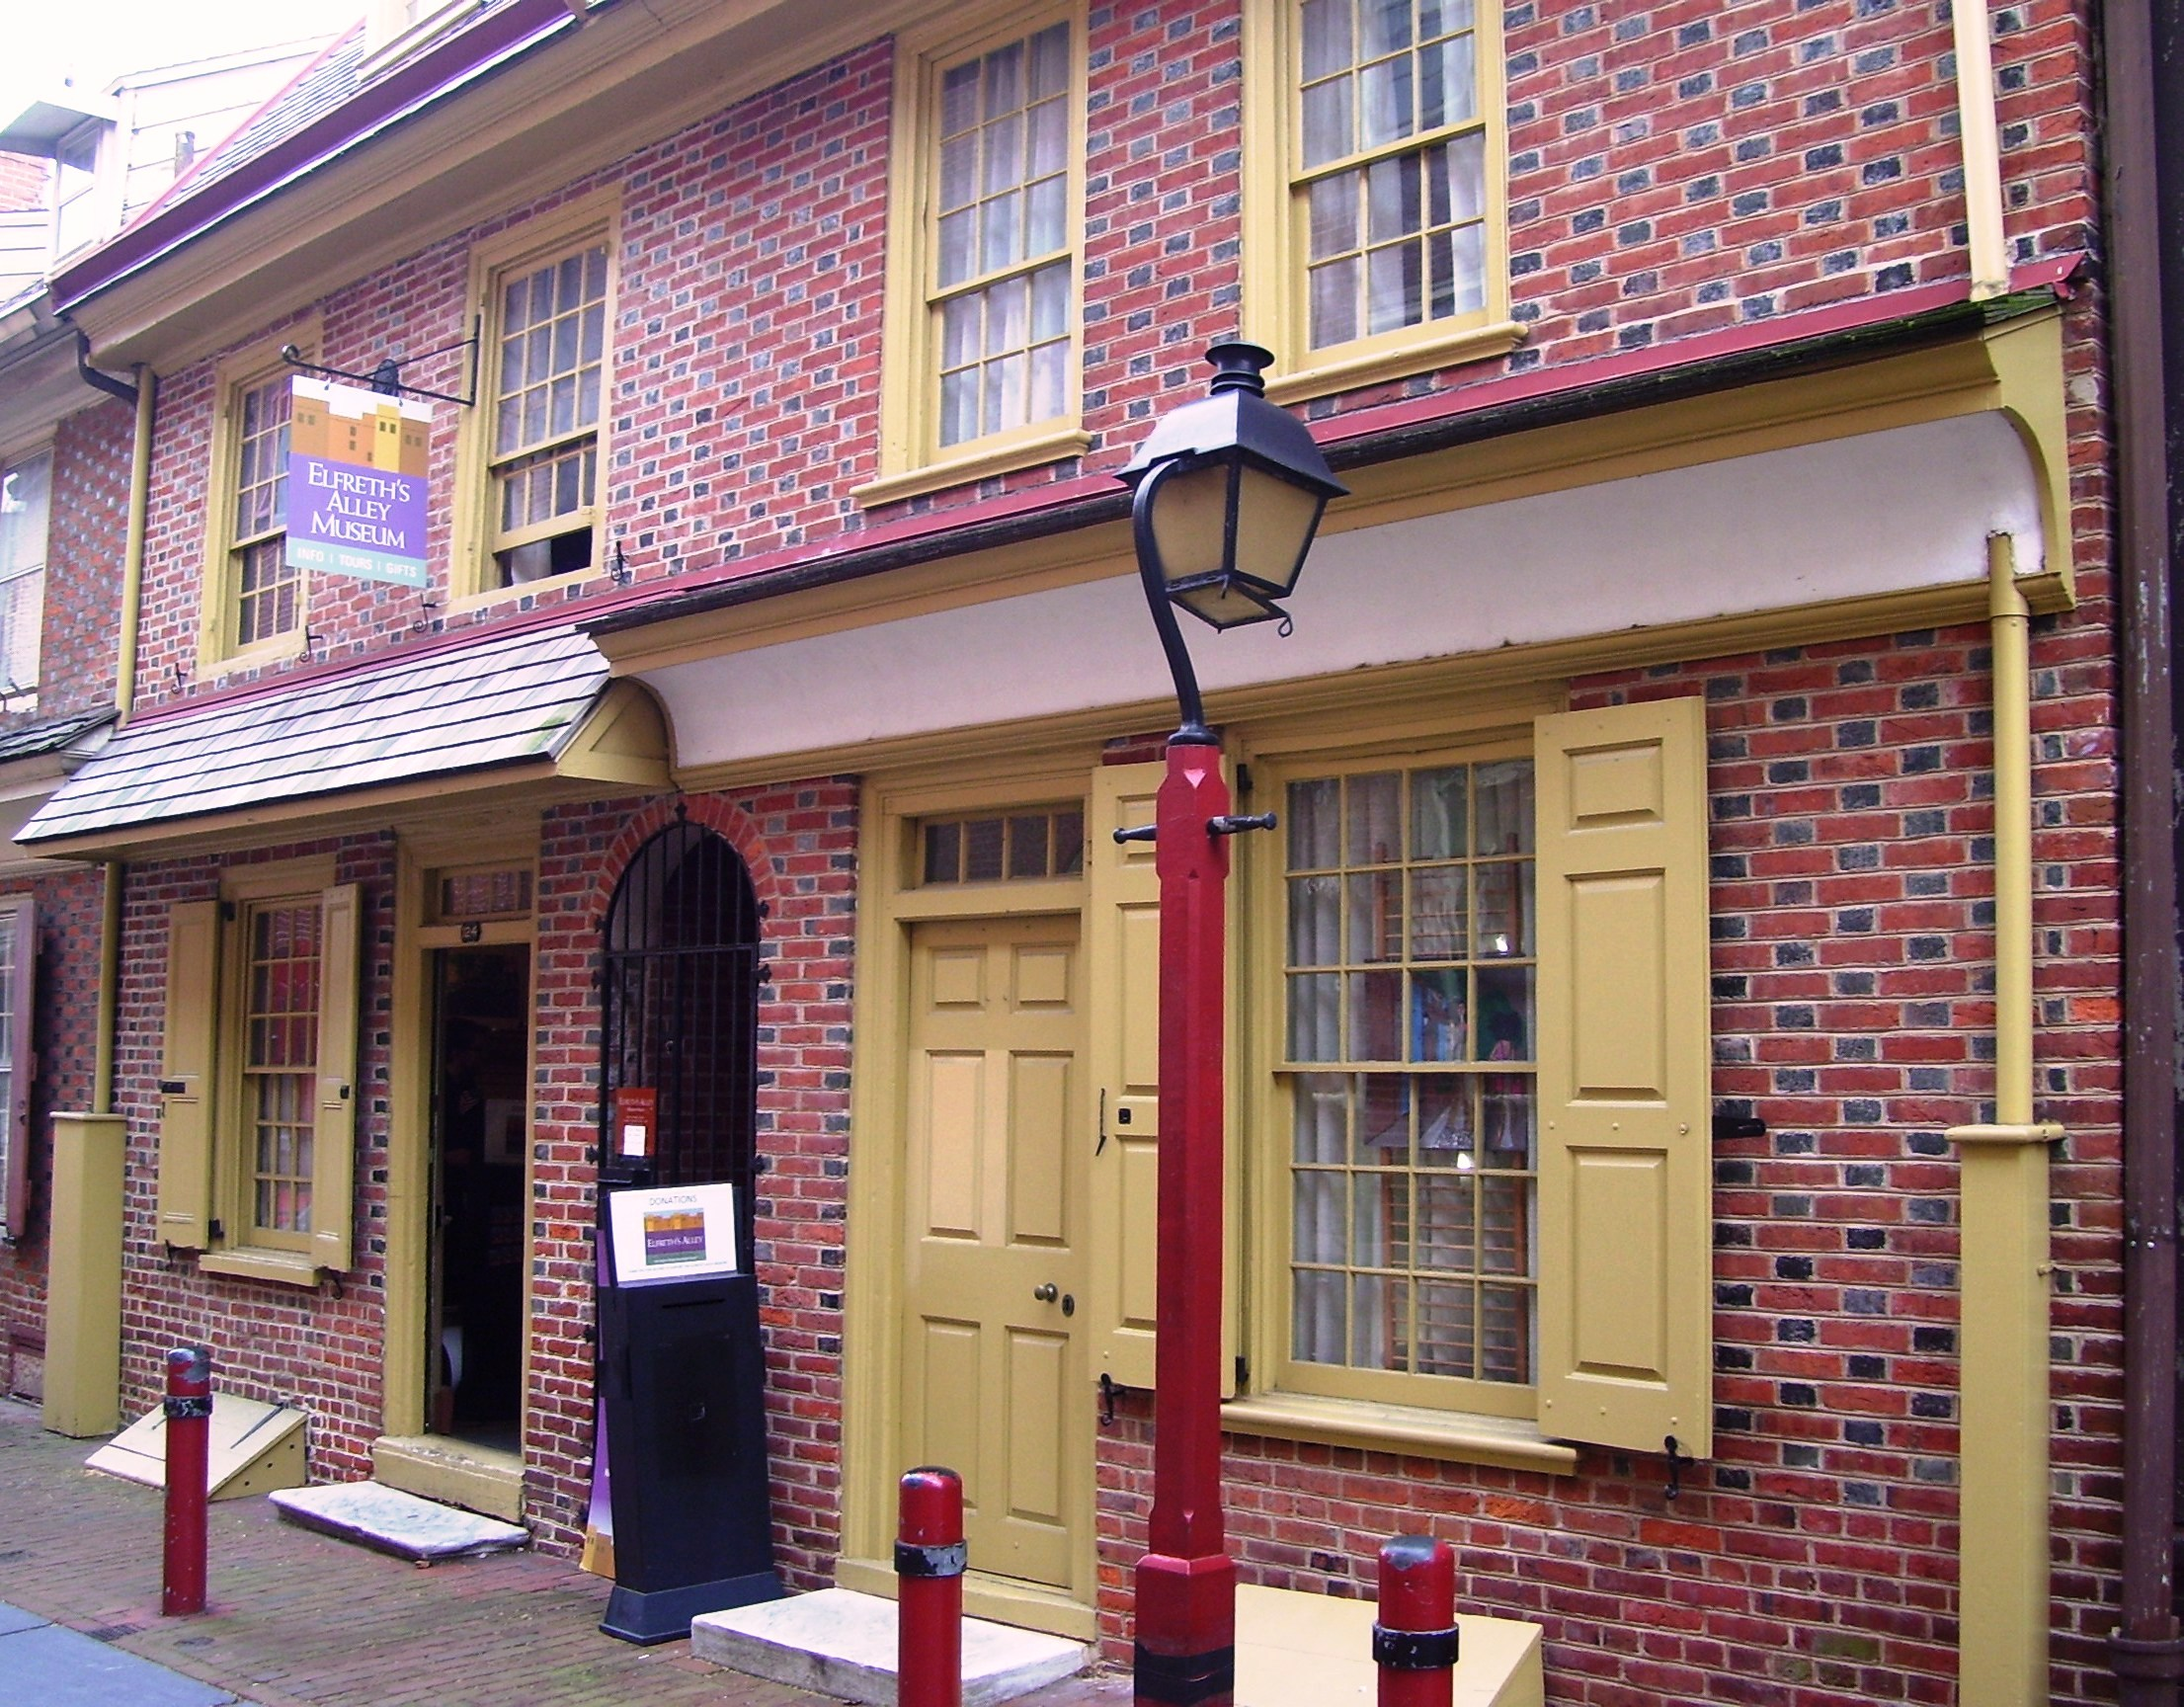 The Elfreth's Alley Musuem.